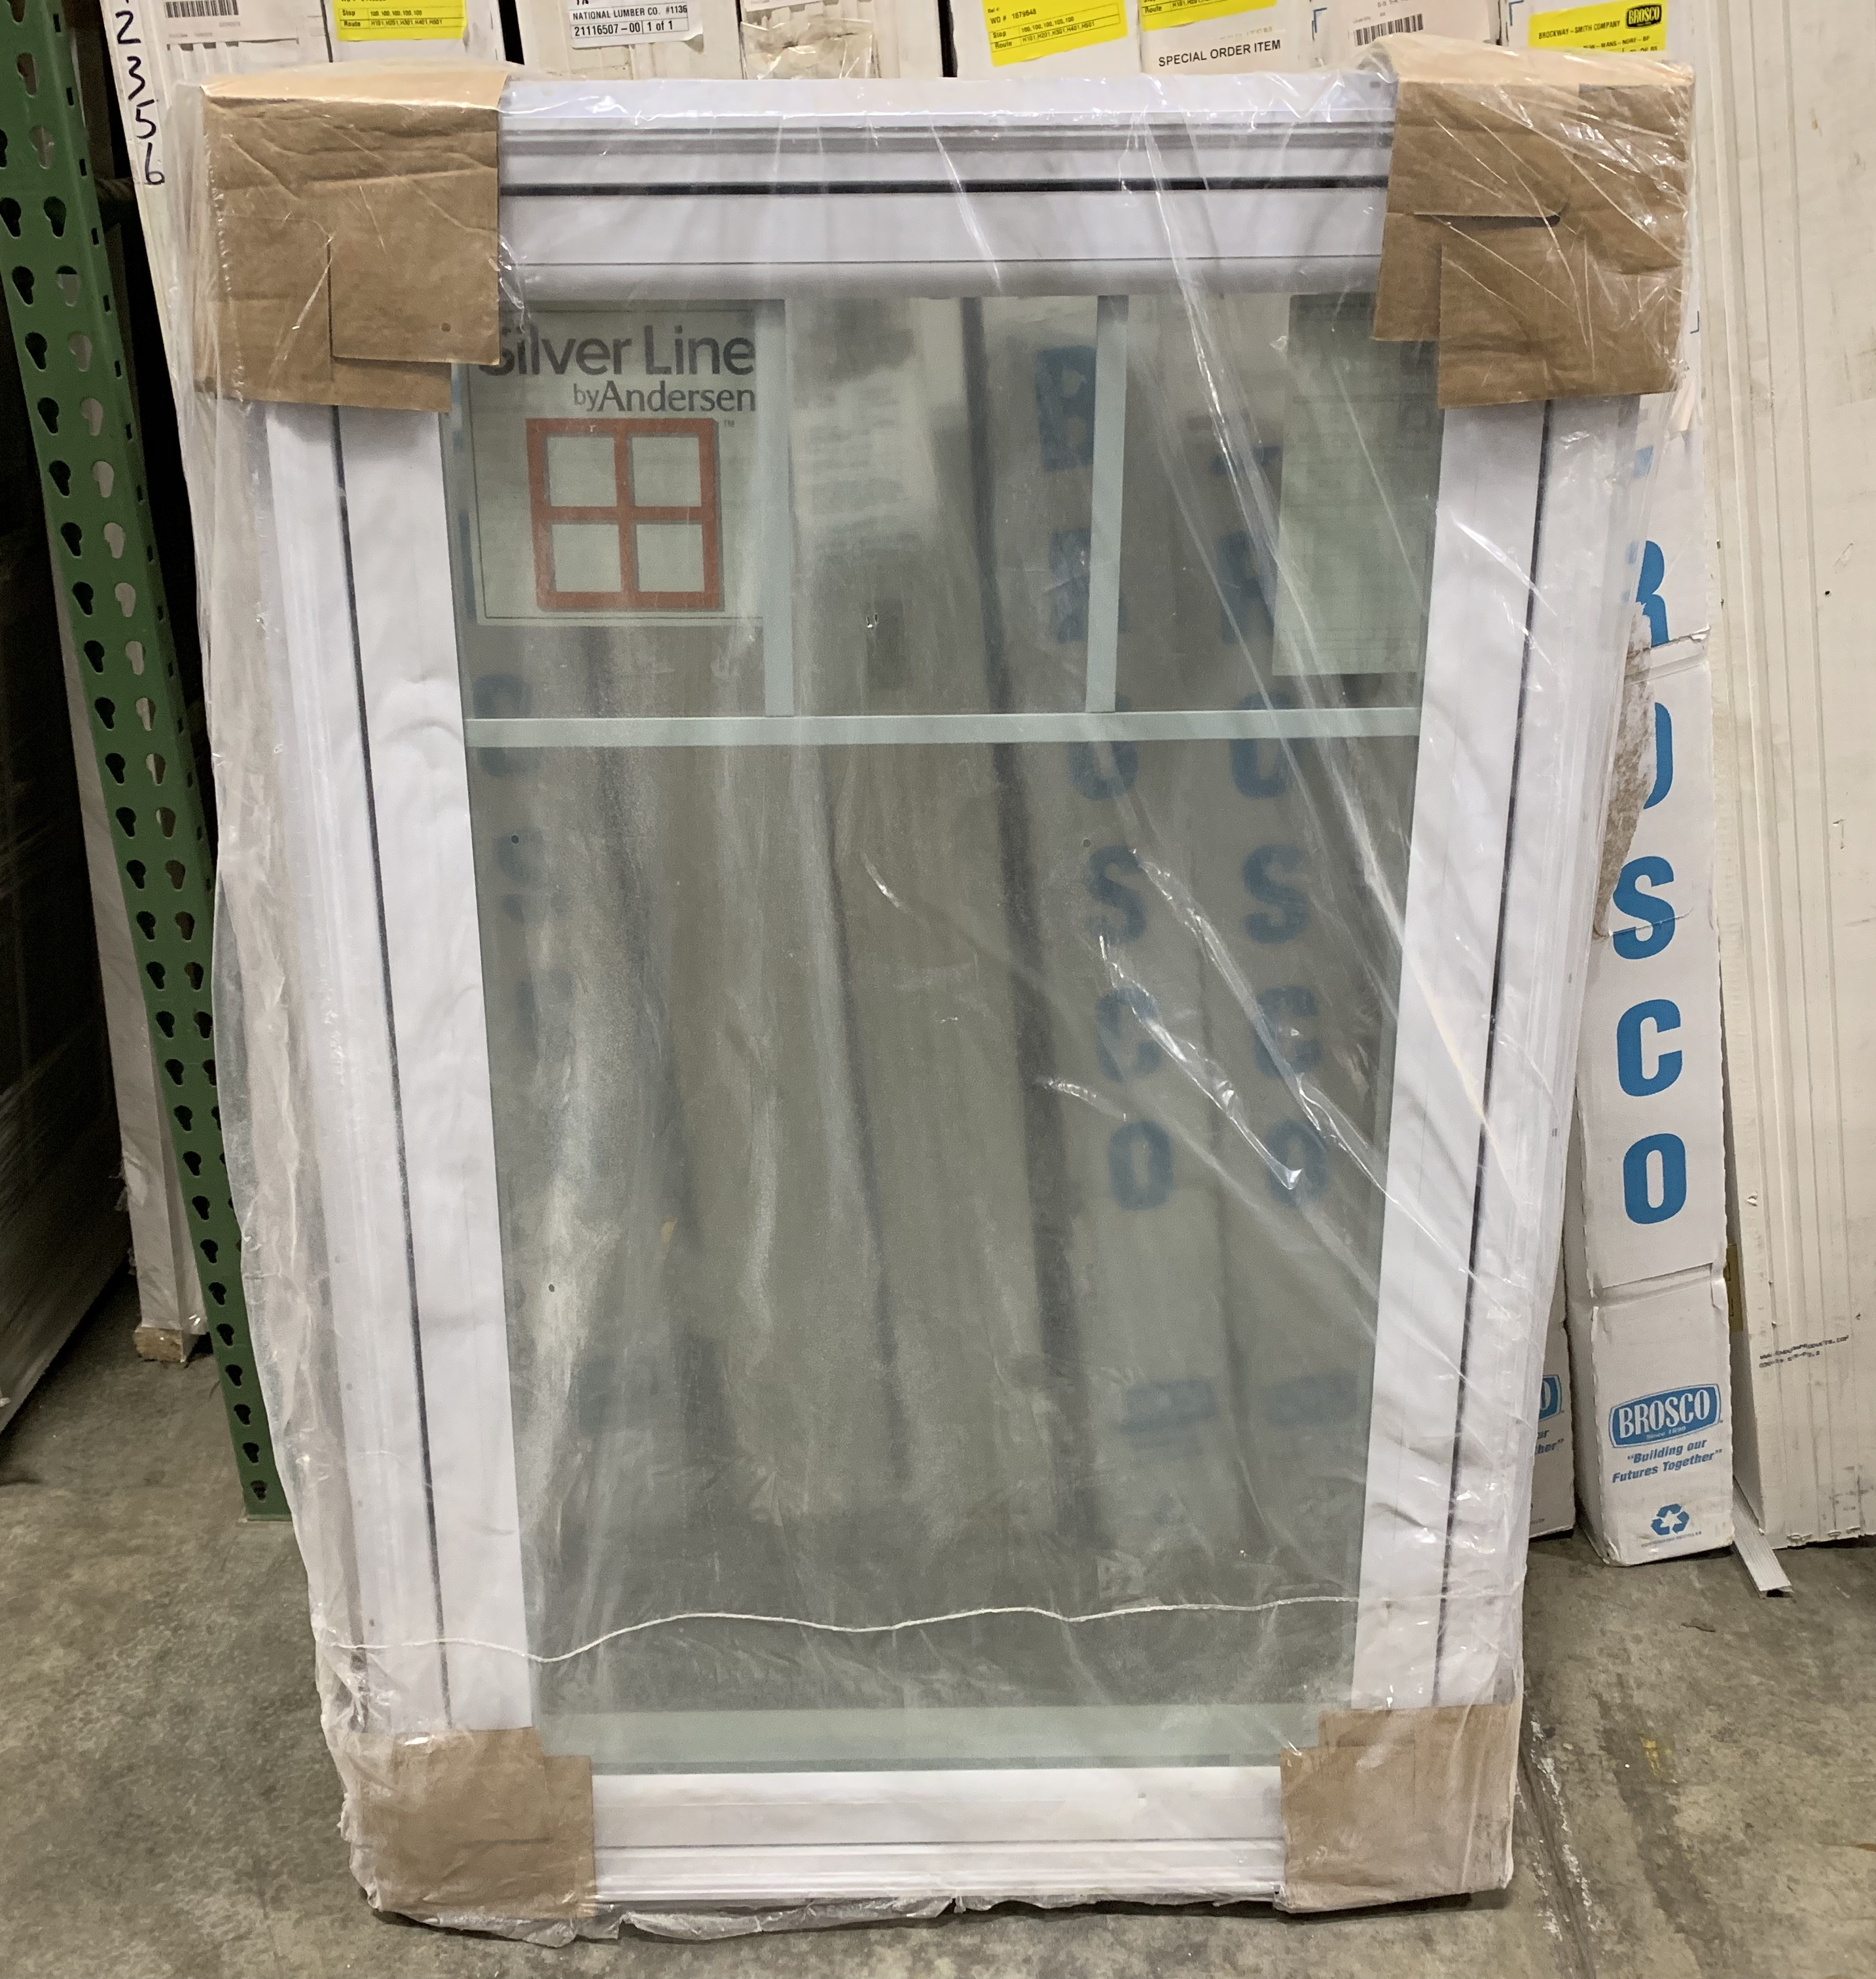 Andersen Silverline 70NCW1 Casement Window